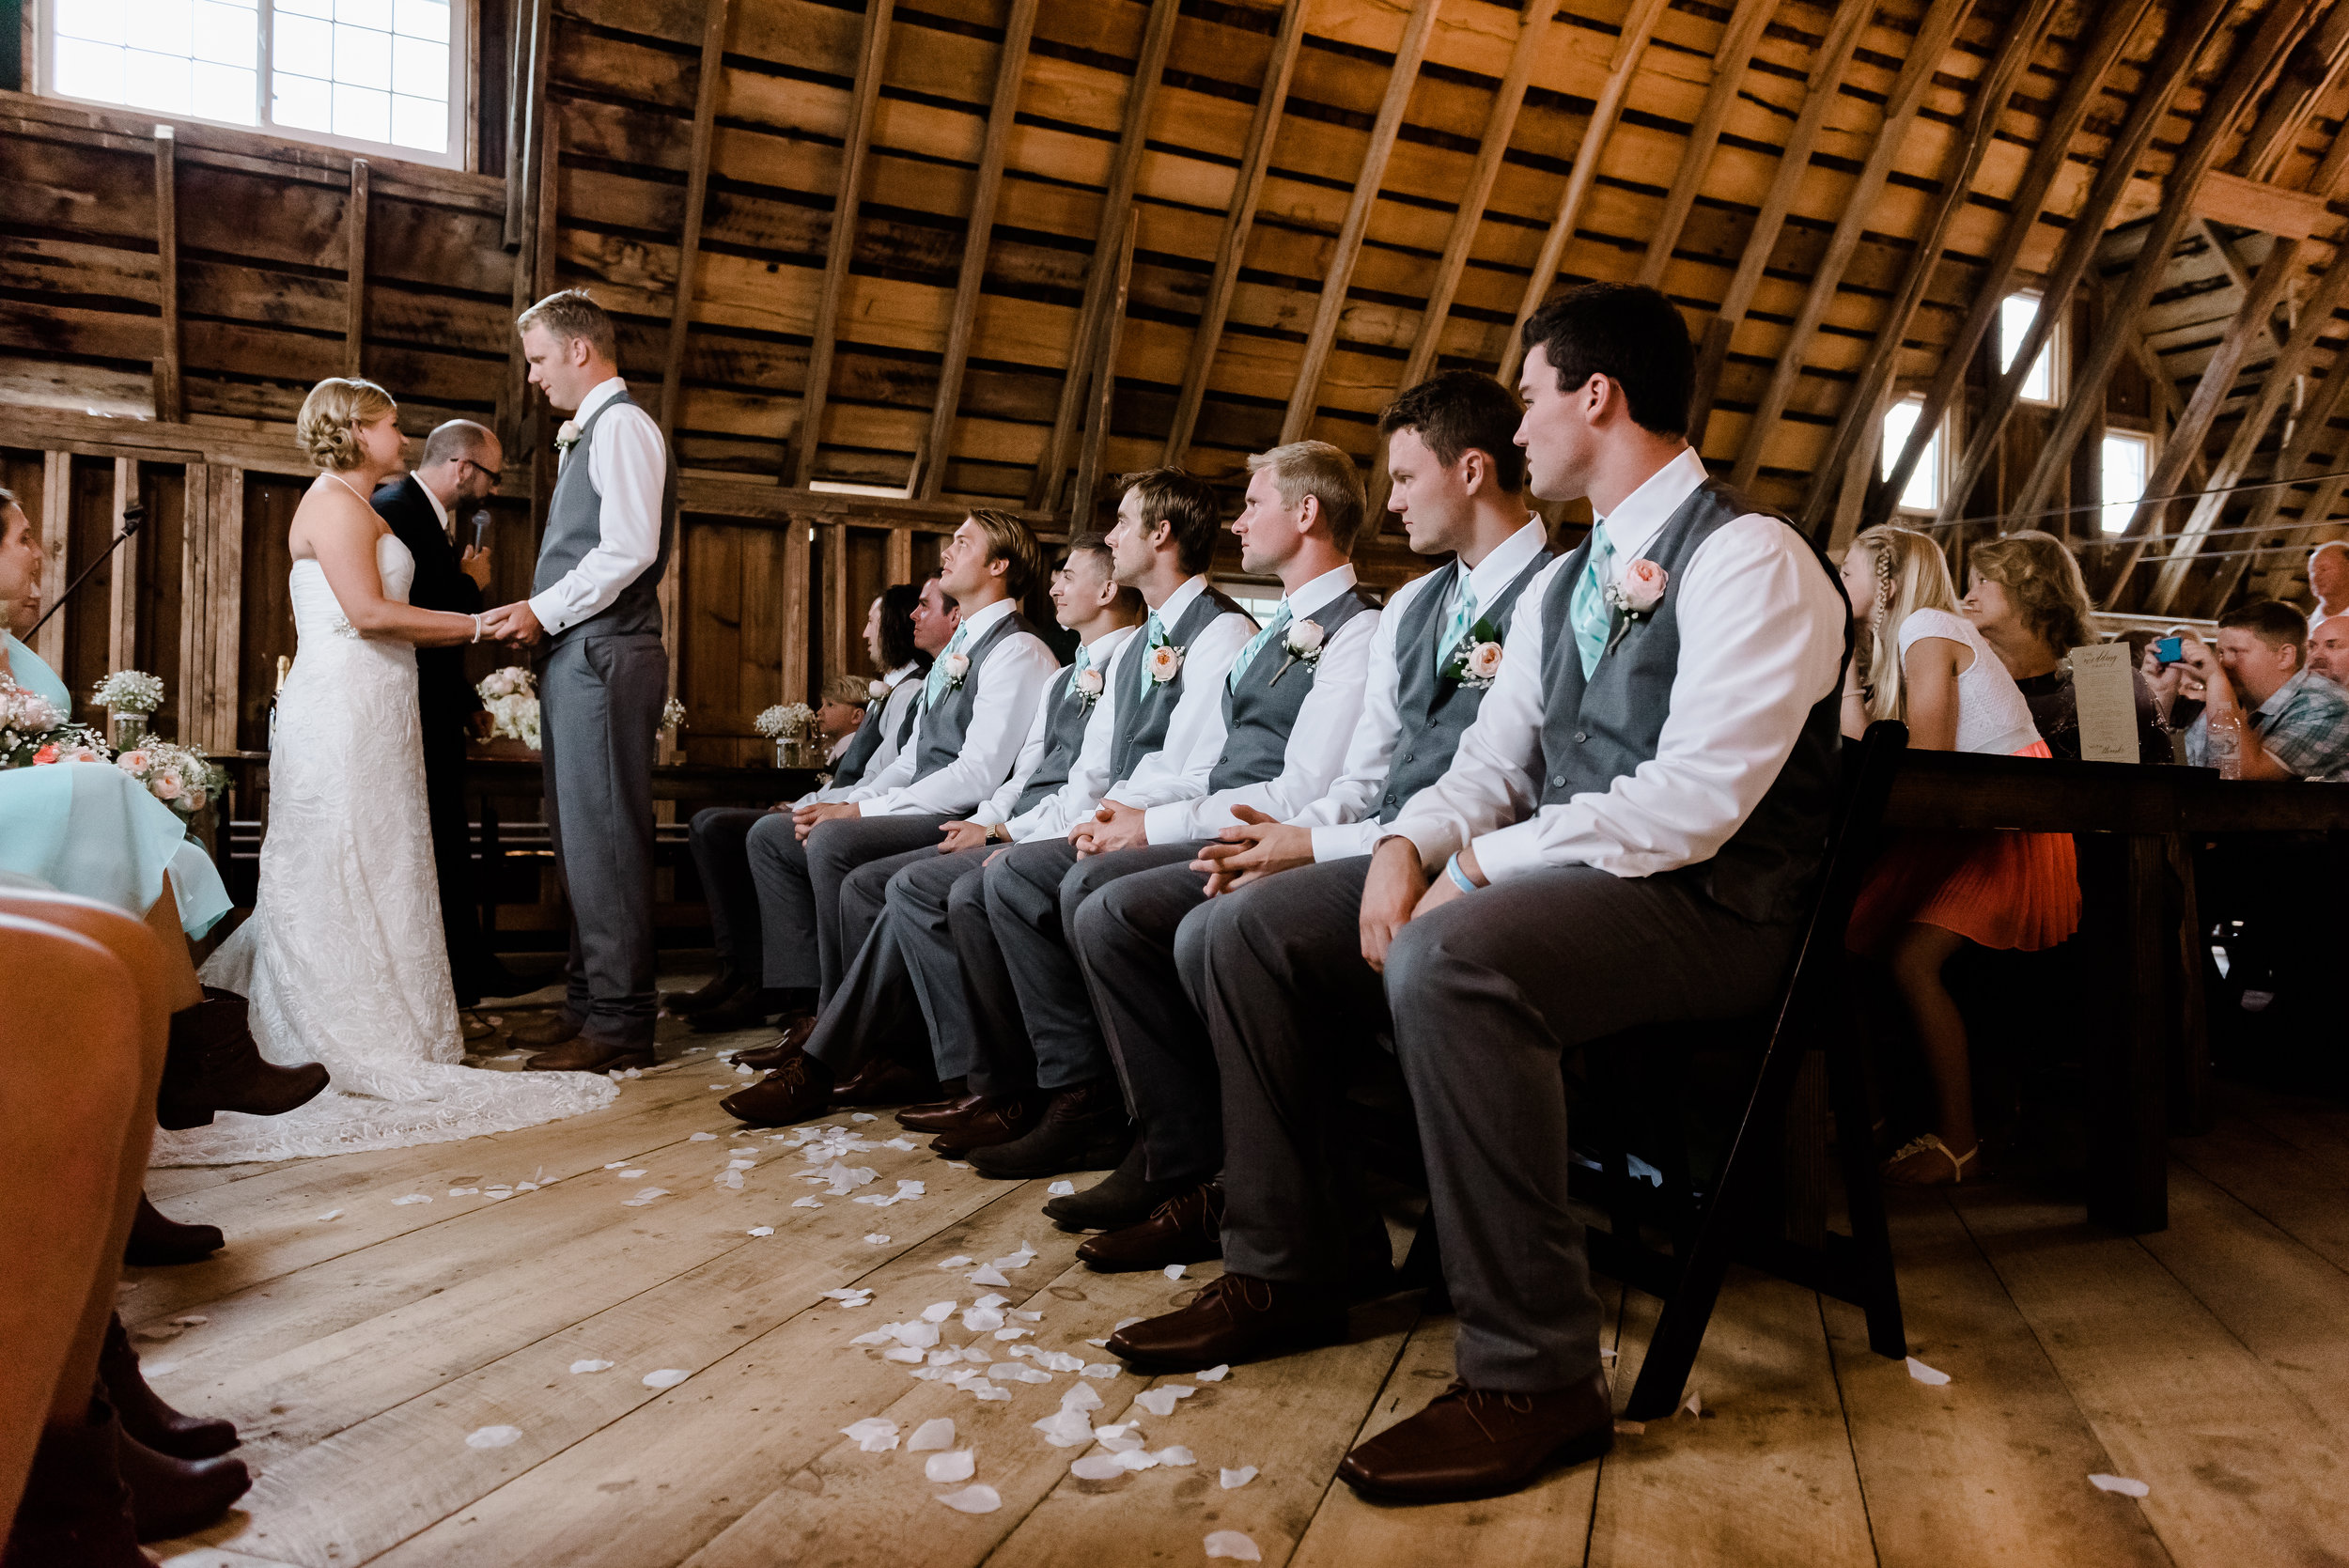 Indoor Ceremony at Bloom Lake Barn on a Rainy Day - Shafer, MN